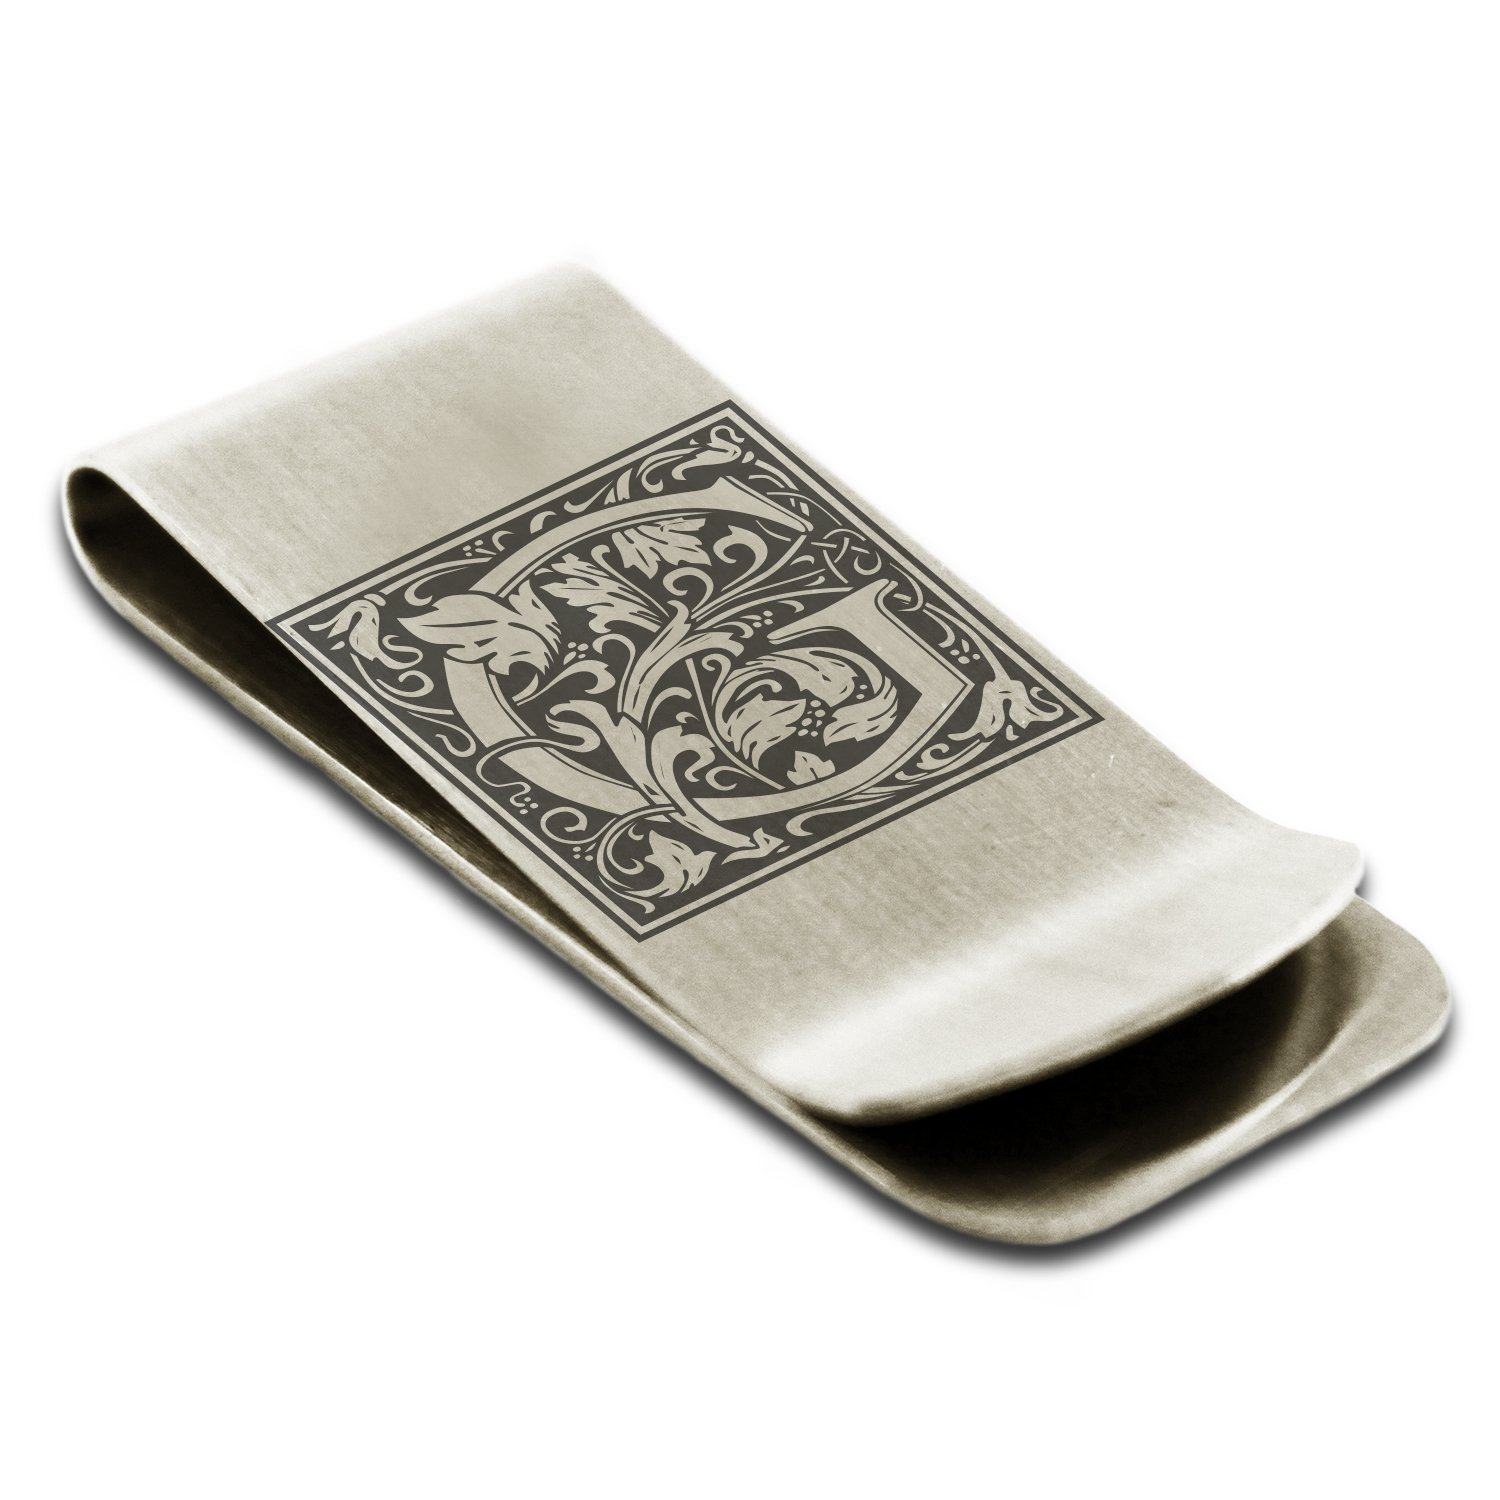 Stainless Steel Letter G Initial Floral Monogram Engraved Money Clip Credit Card Holder Tioneer M001G-ESM004